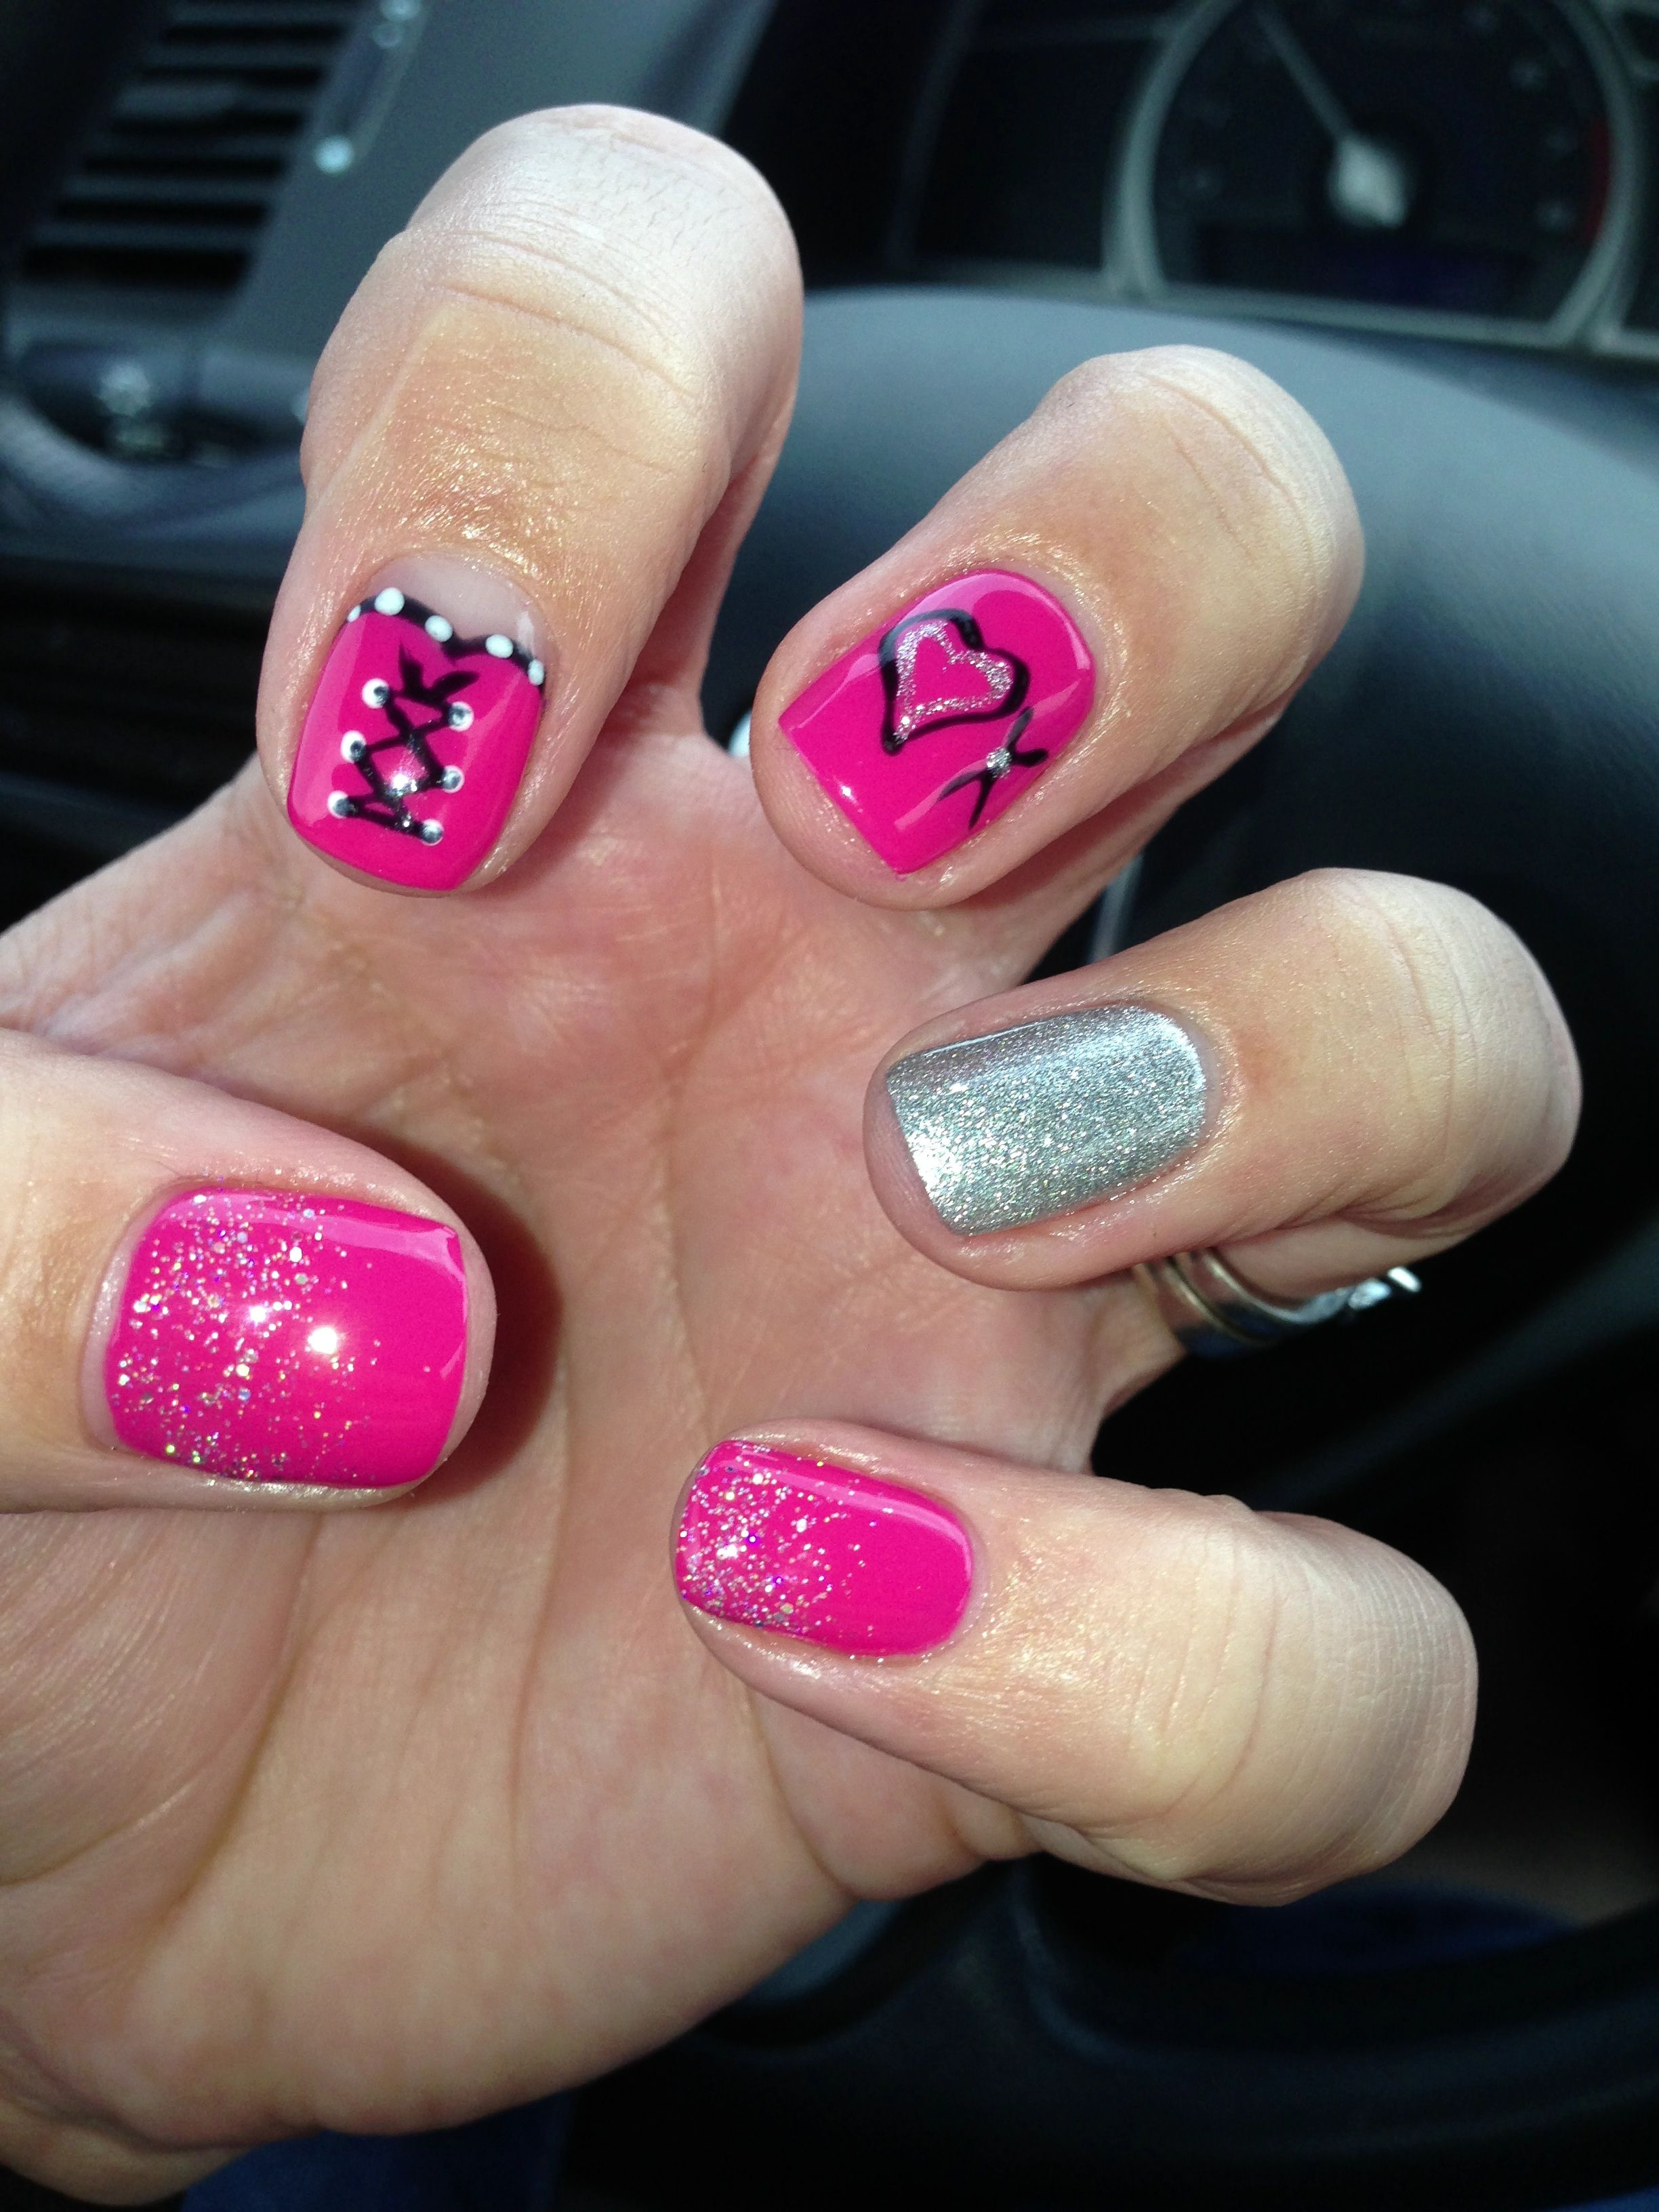 New gel nails, hearts xoxox nail design. Nails by Lena | My Nail Art ...